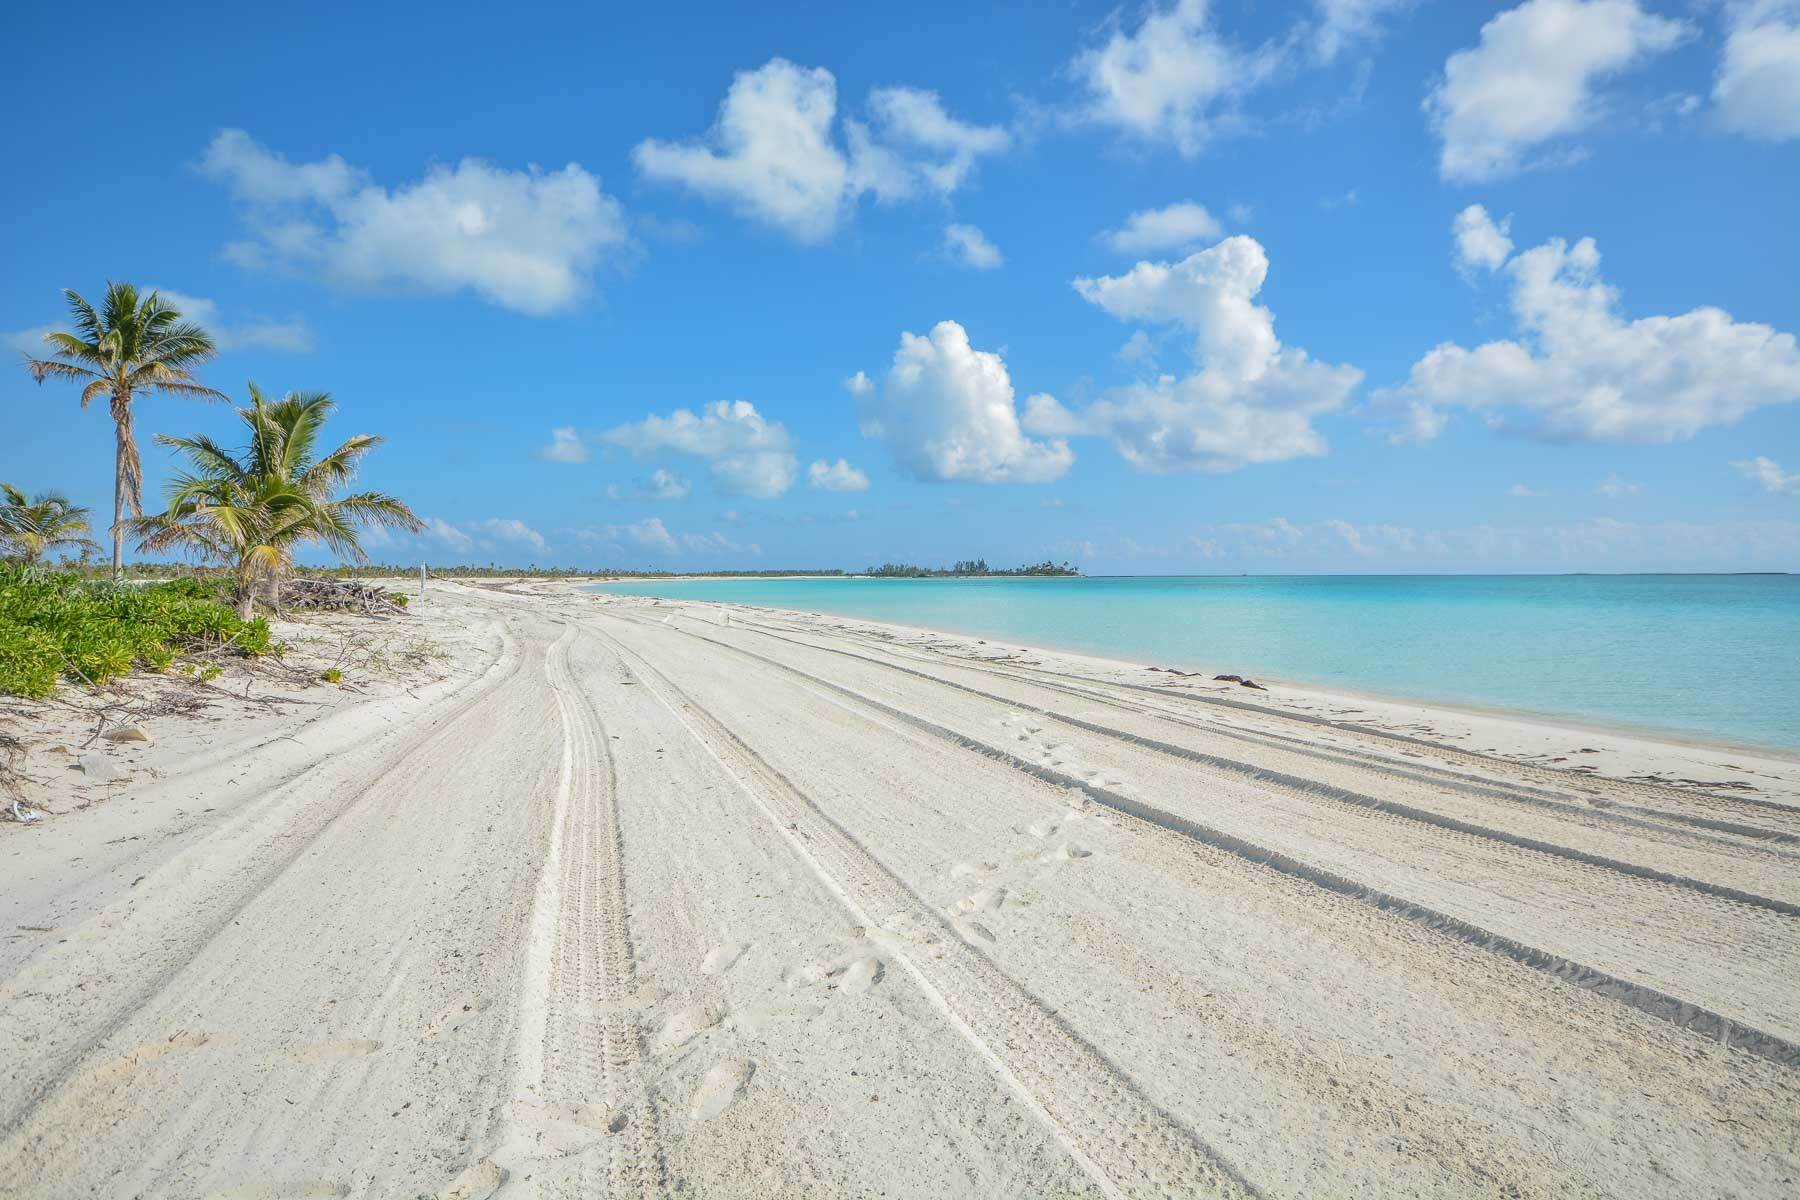 Land for Sale at Access Lot Number 3 Chub Cay, Berry Islands, Bahamas